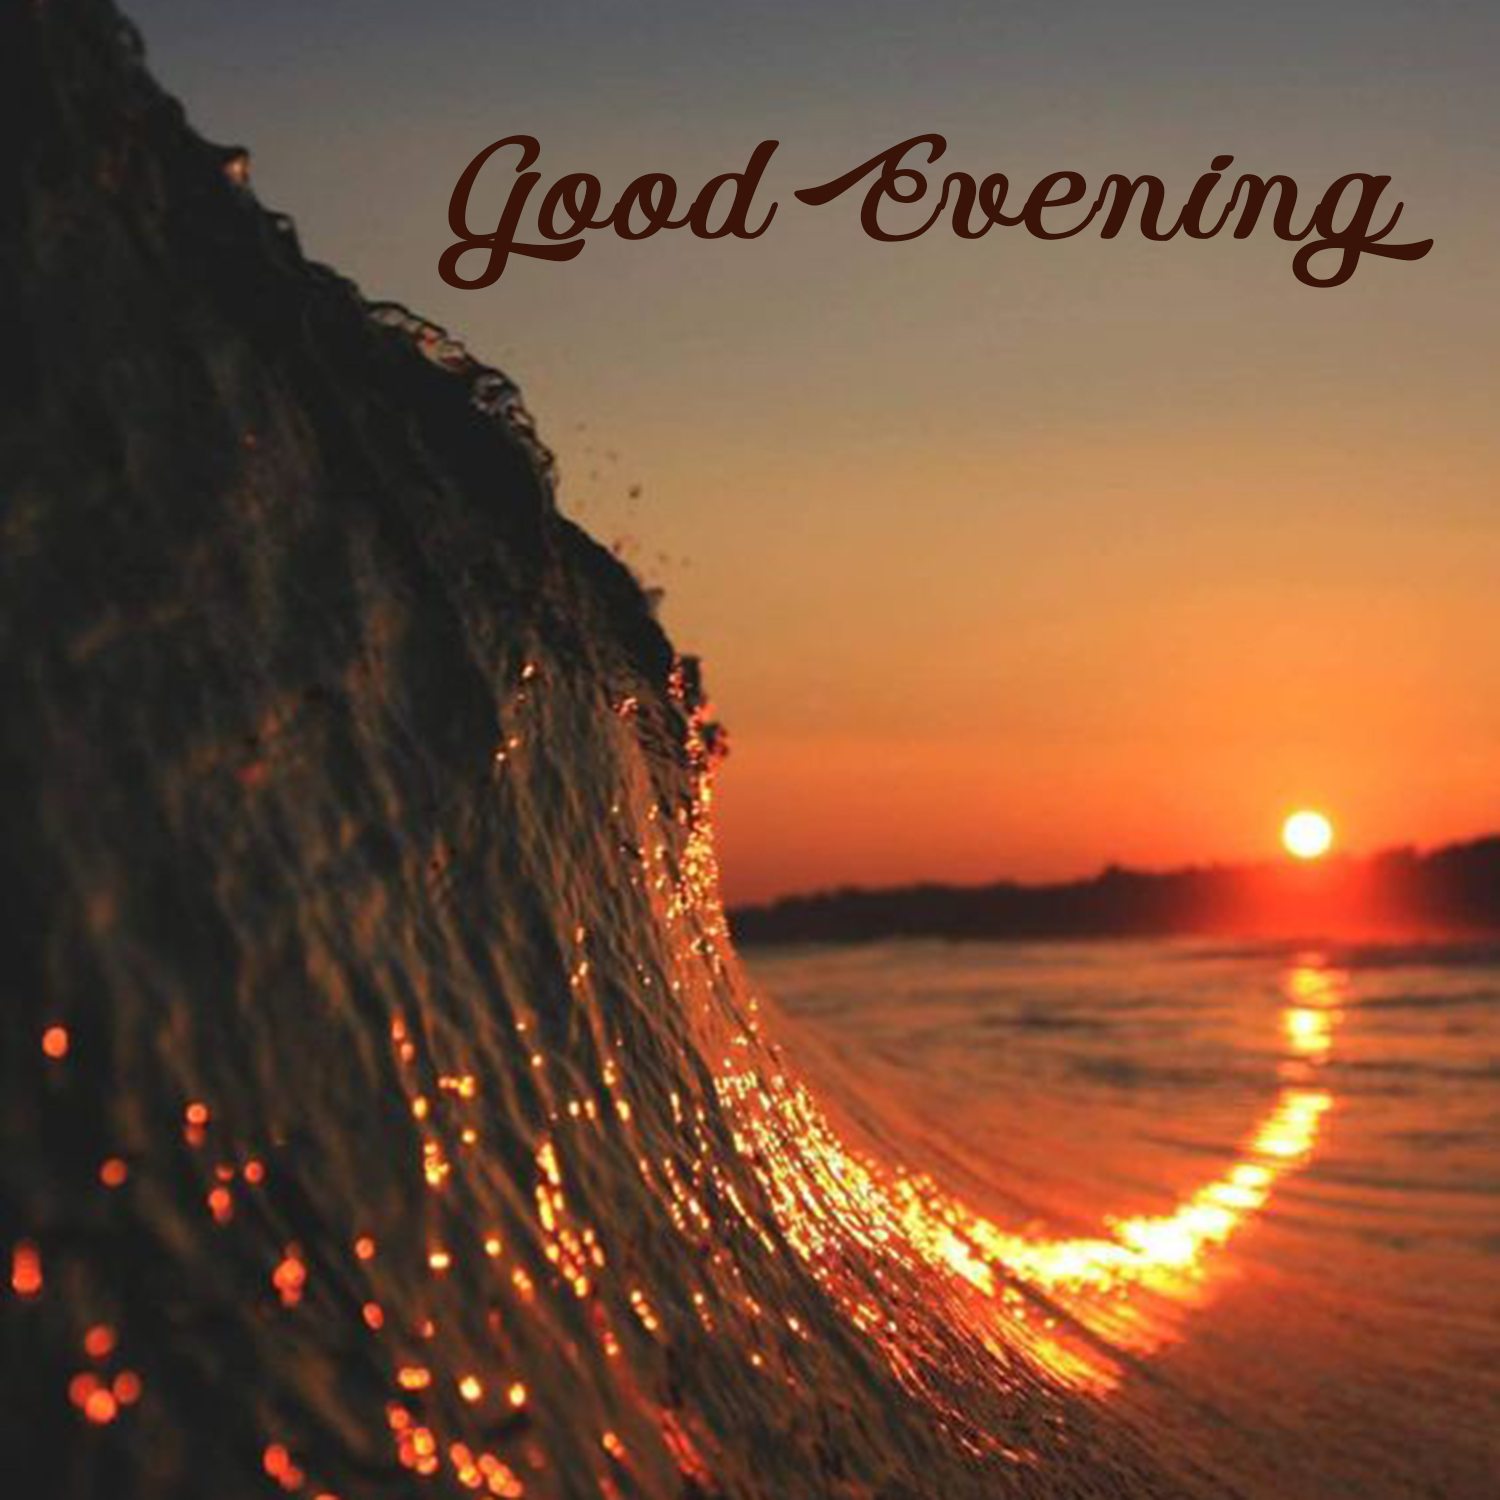 Download Free Images Of Good Evening - Good Morning Images, Quotes, Wishes,  Messages, greetings & eCards